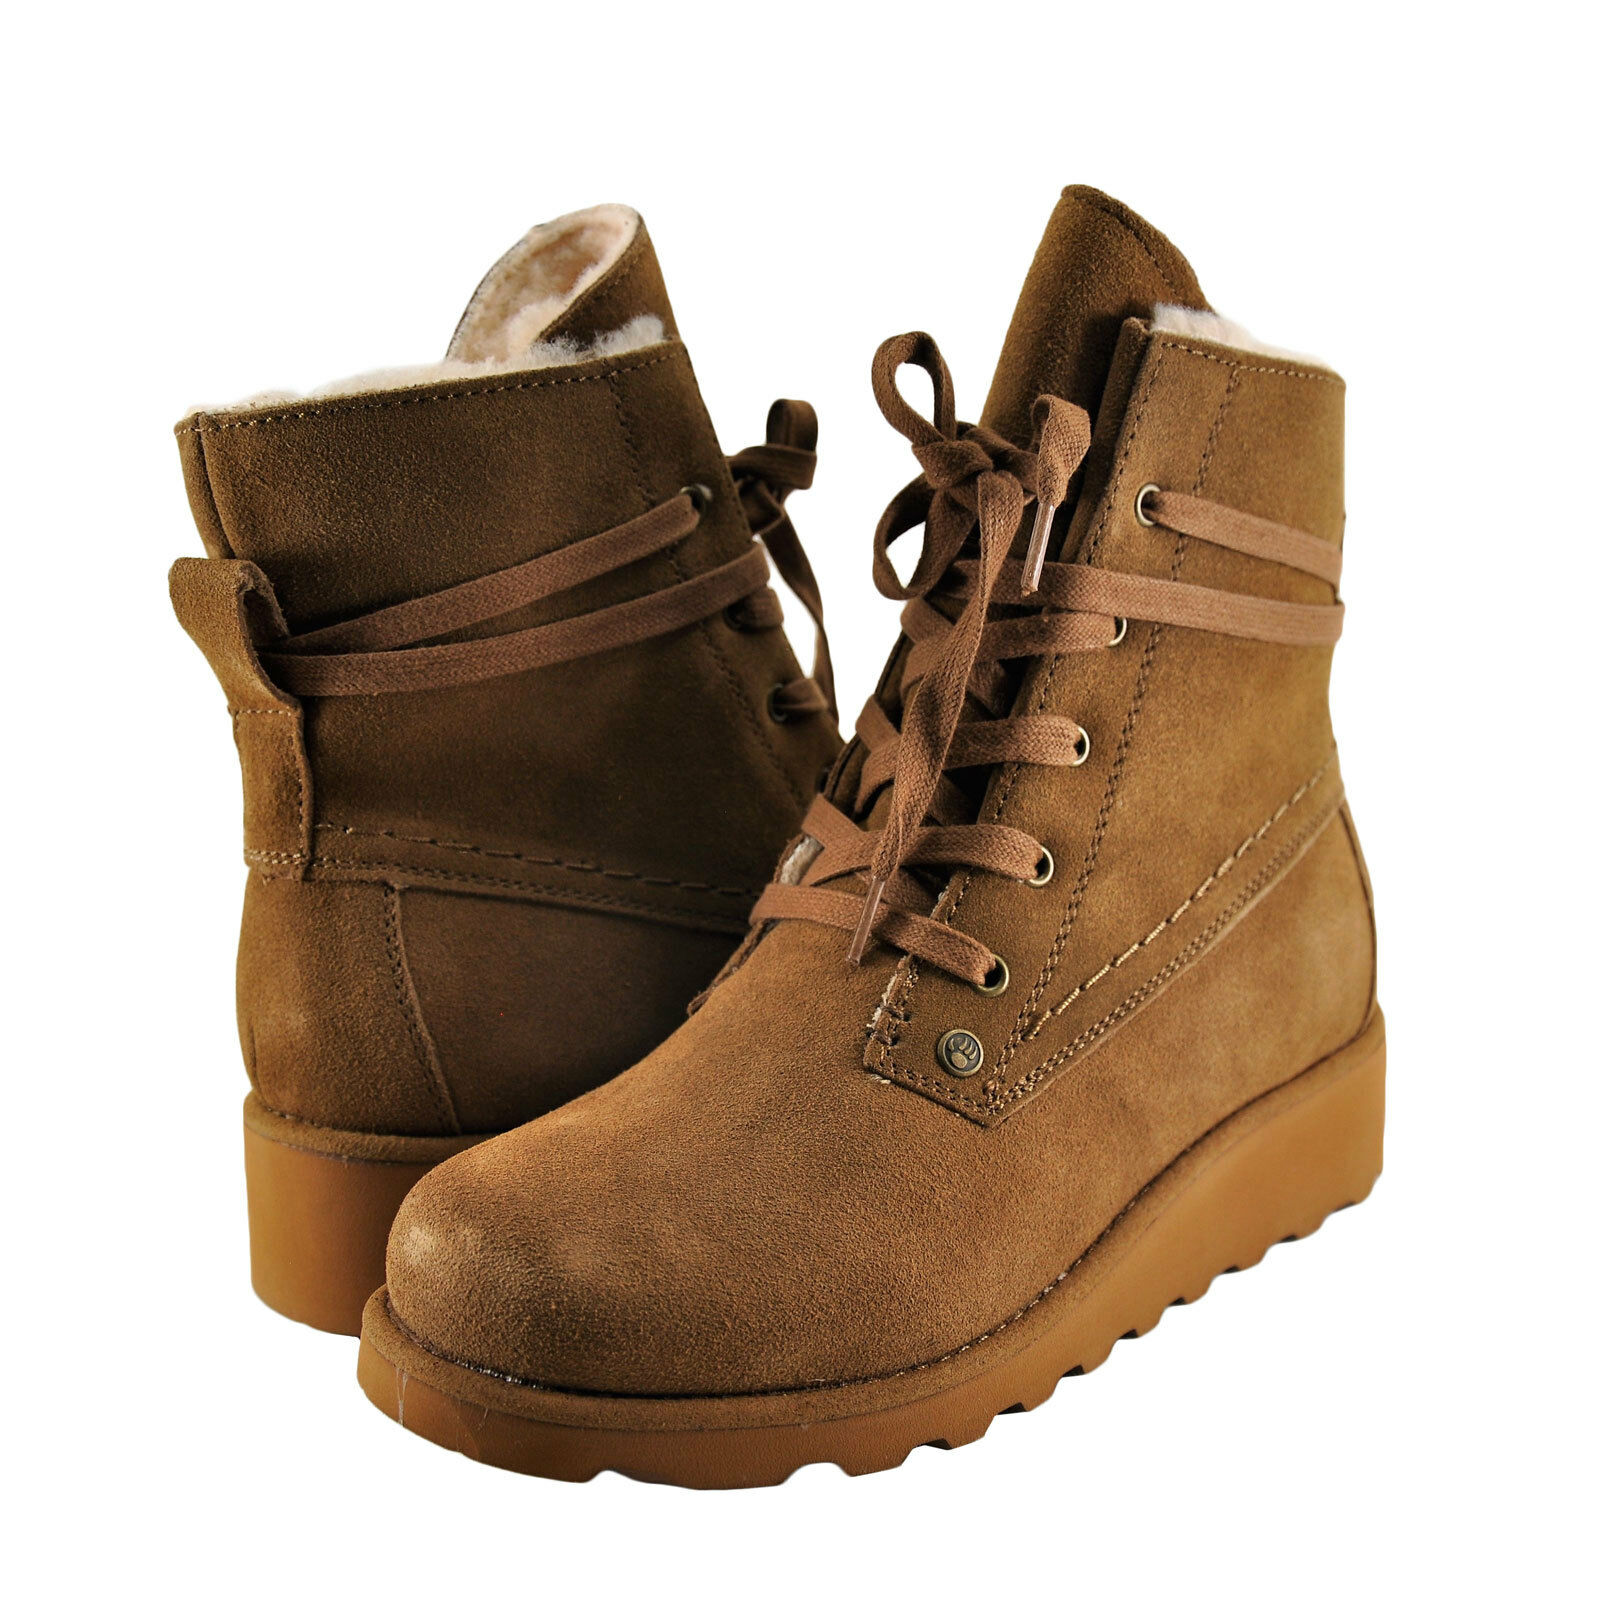 Chaussures Femmes Bearpaw Krista Lace Up Wedge démarrage 2025 Hickory  NEUF